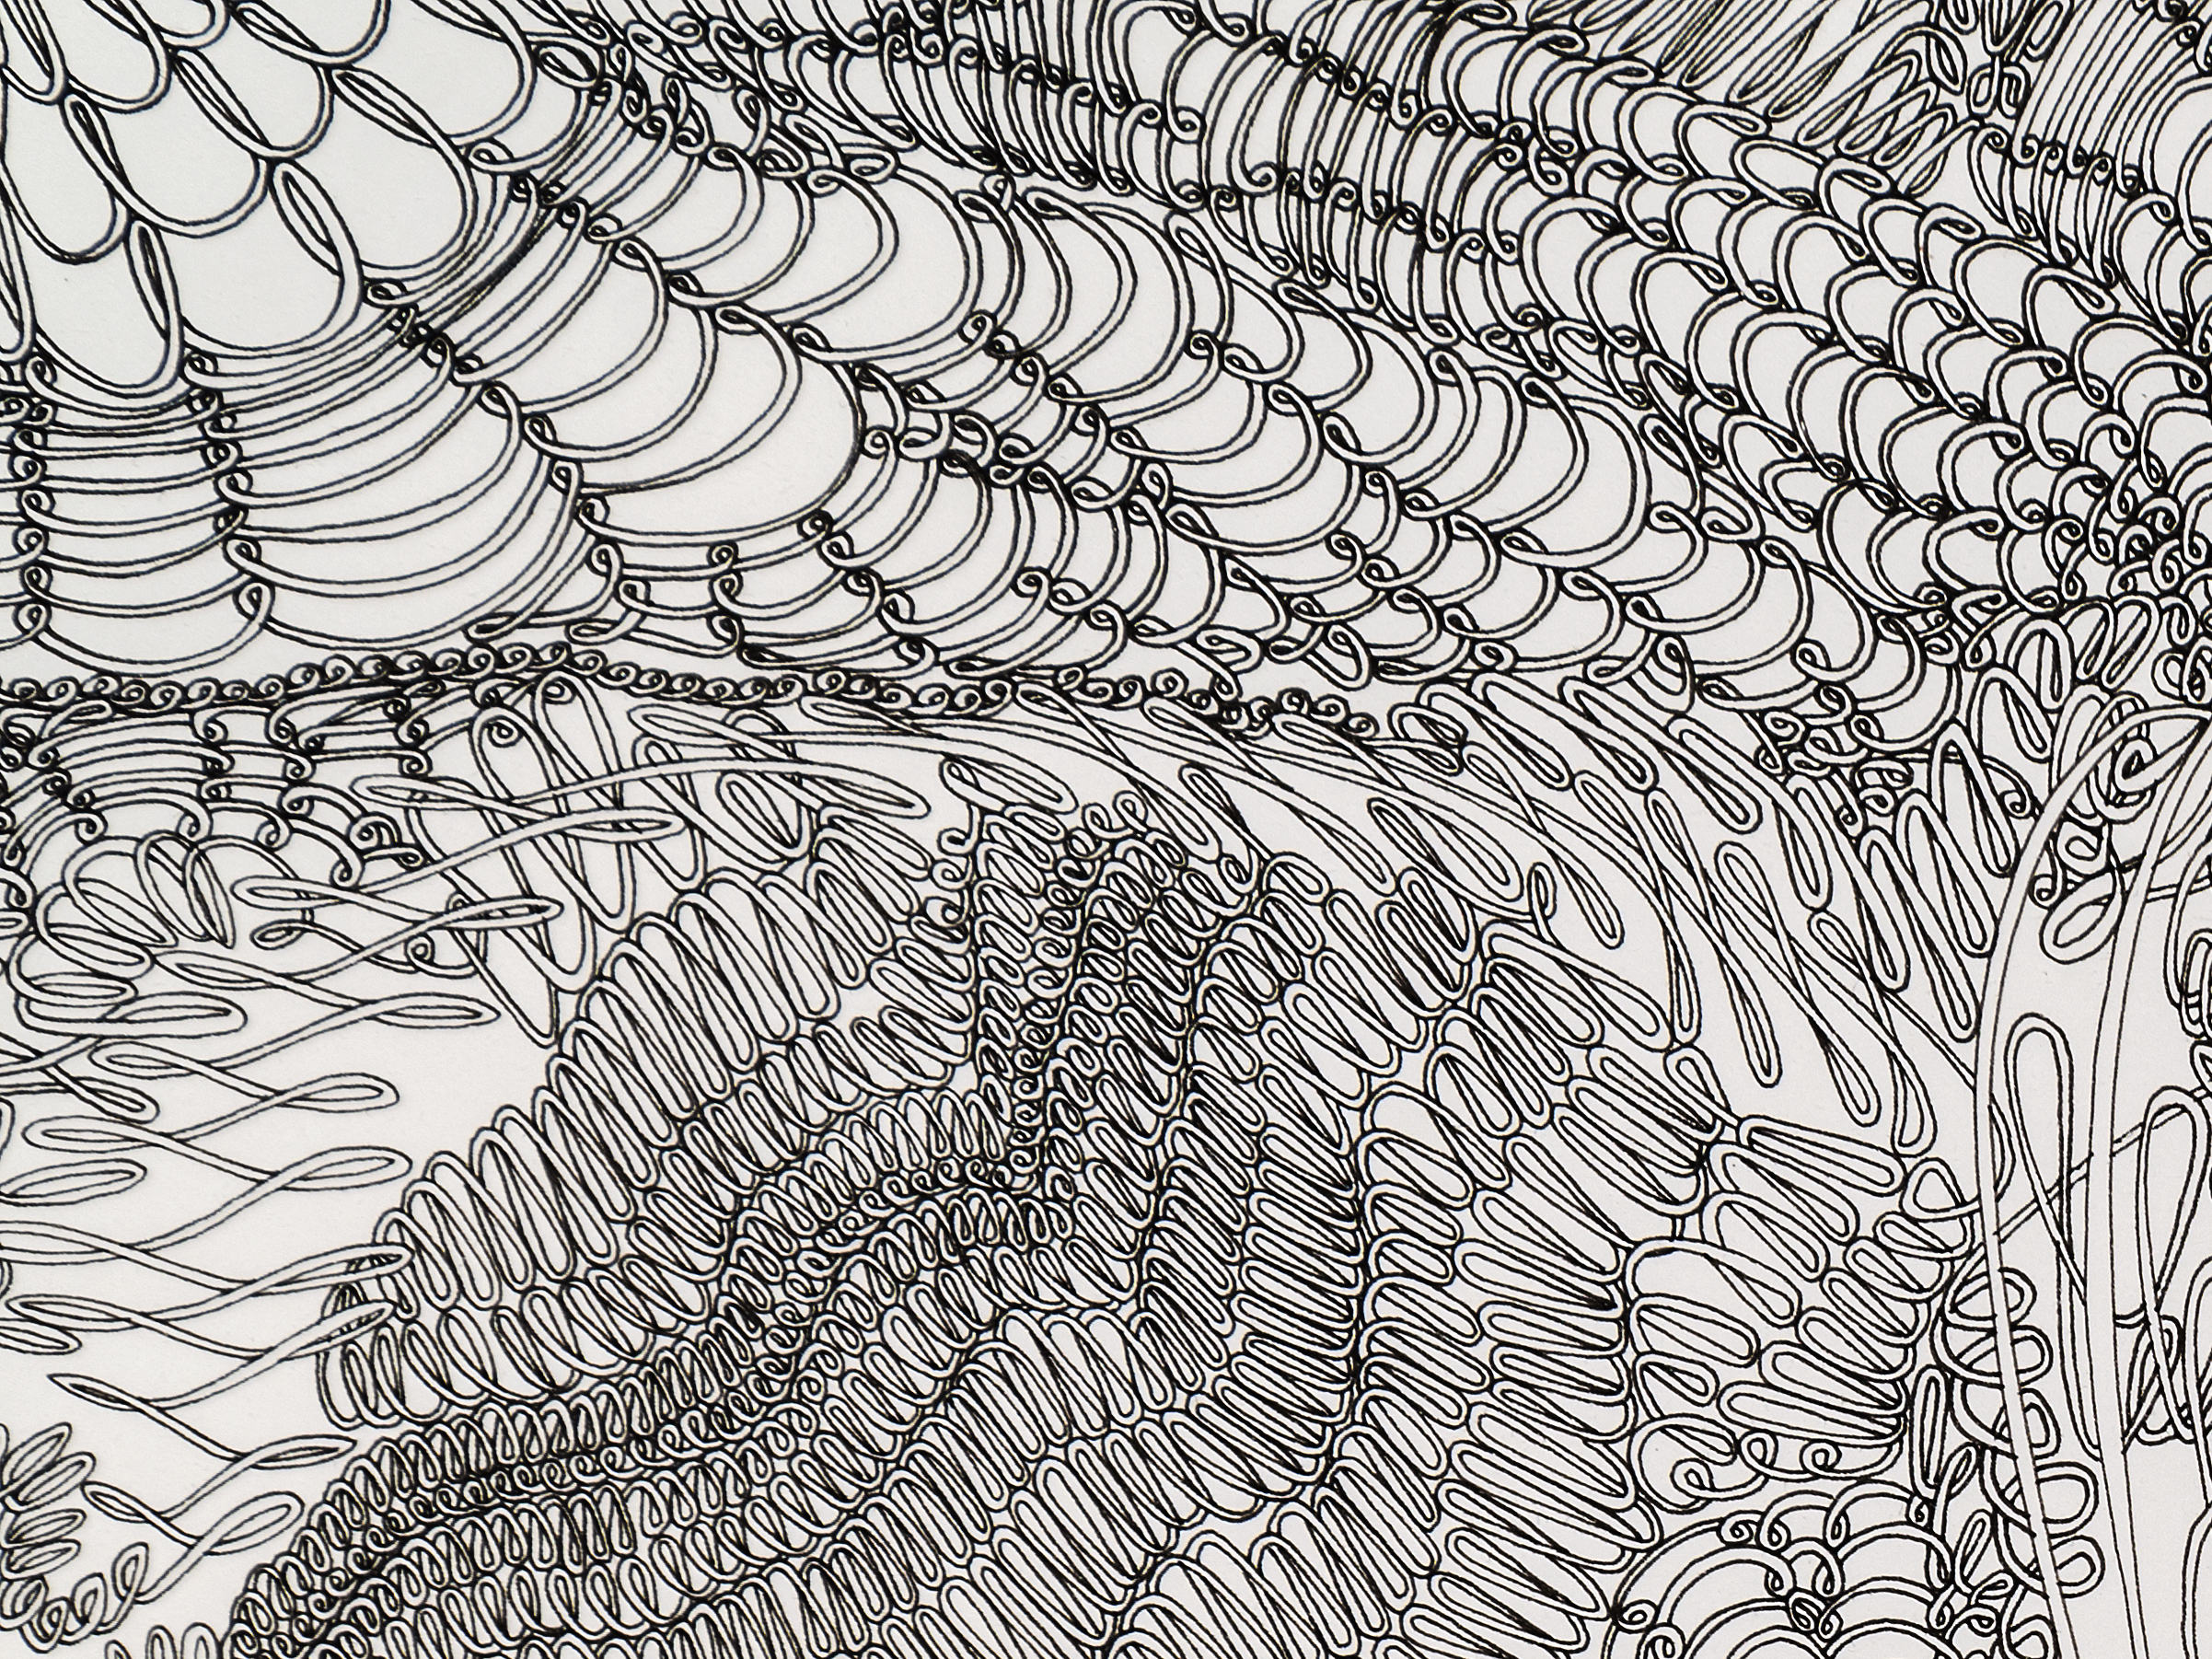 """Knot Within Bounds (DETAIL)"", ink on paper, 22x30, $1,750"